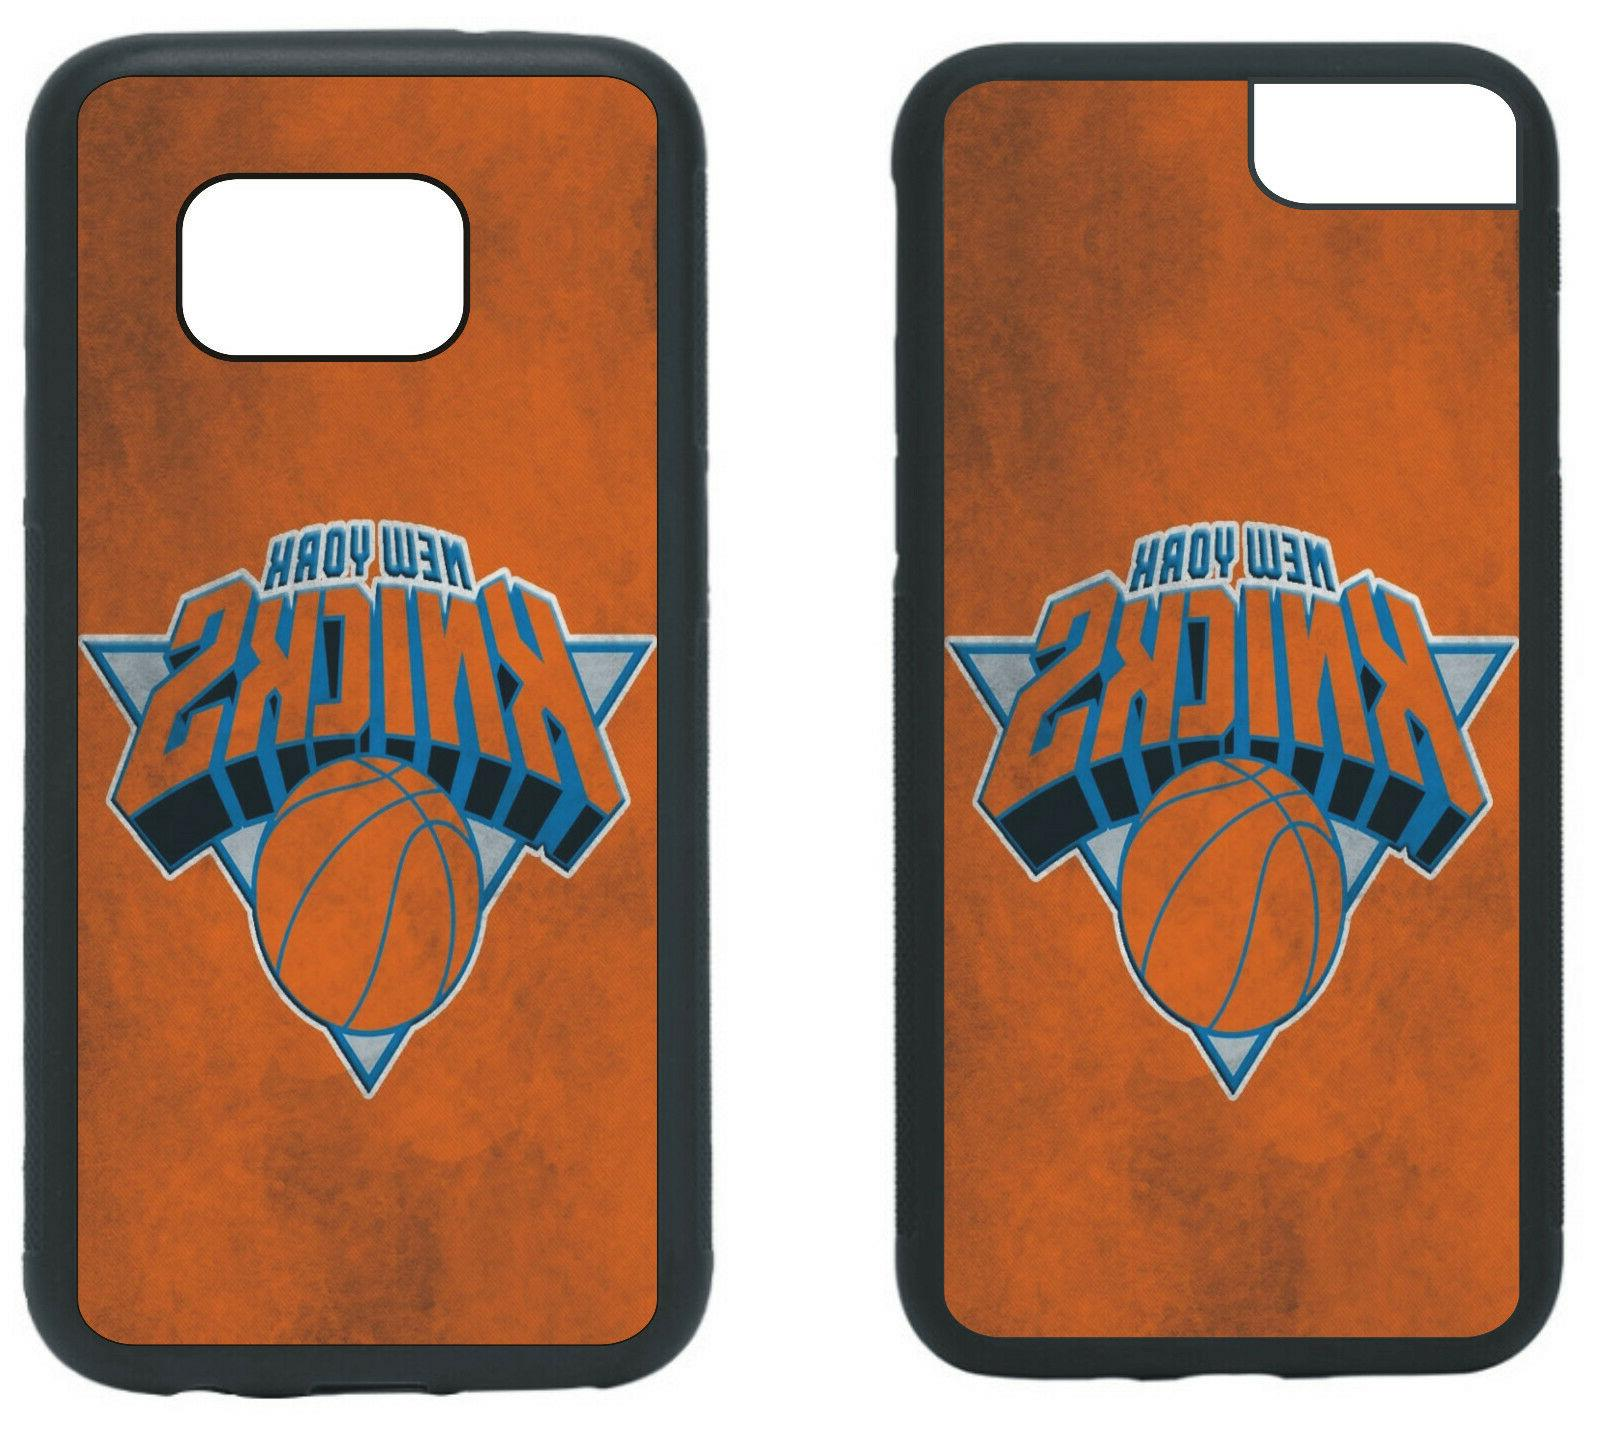 new york knicks phone case cover fits